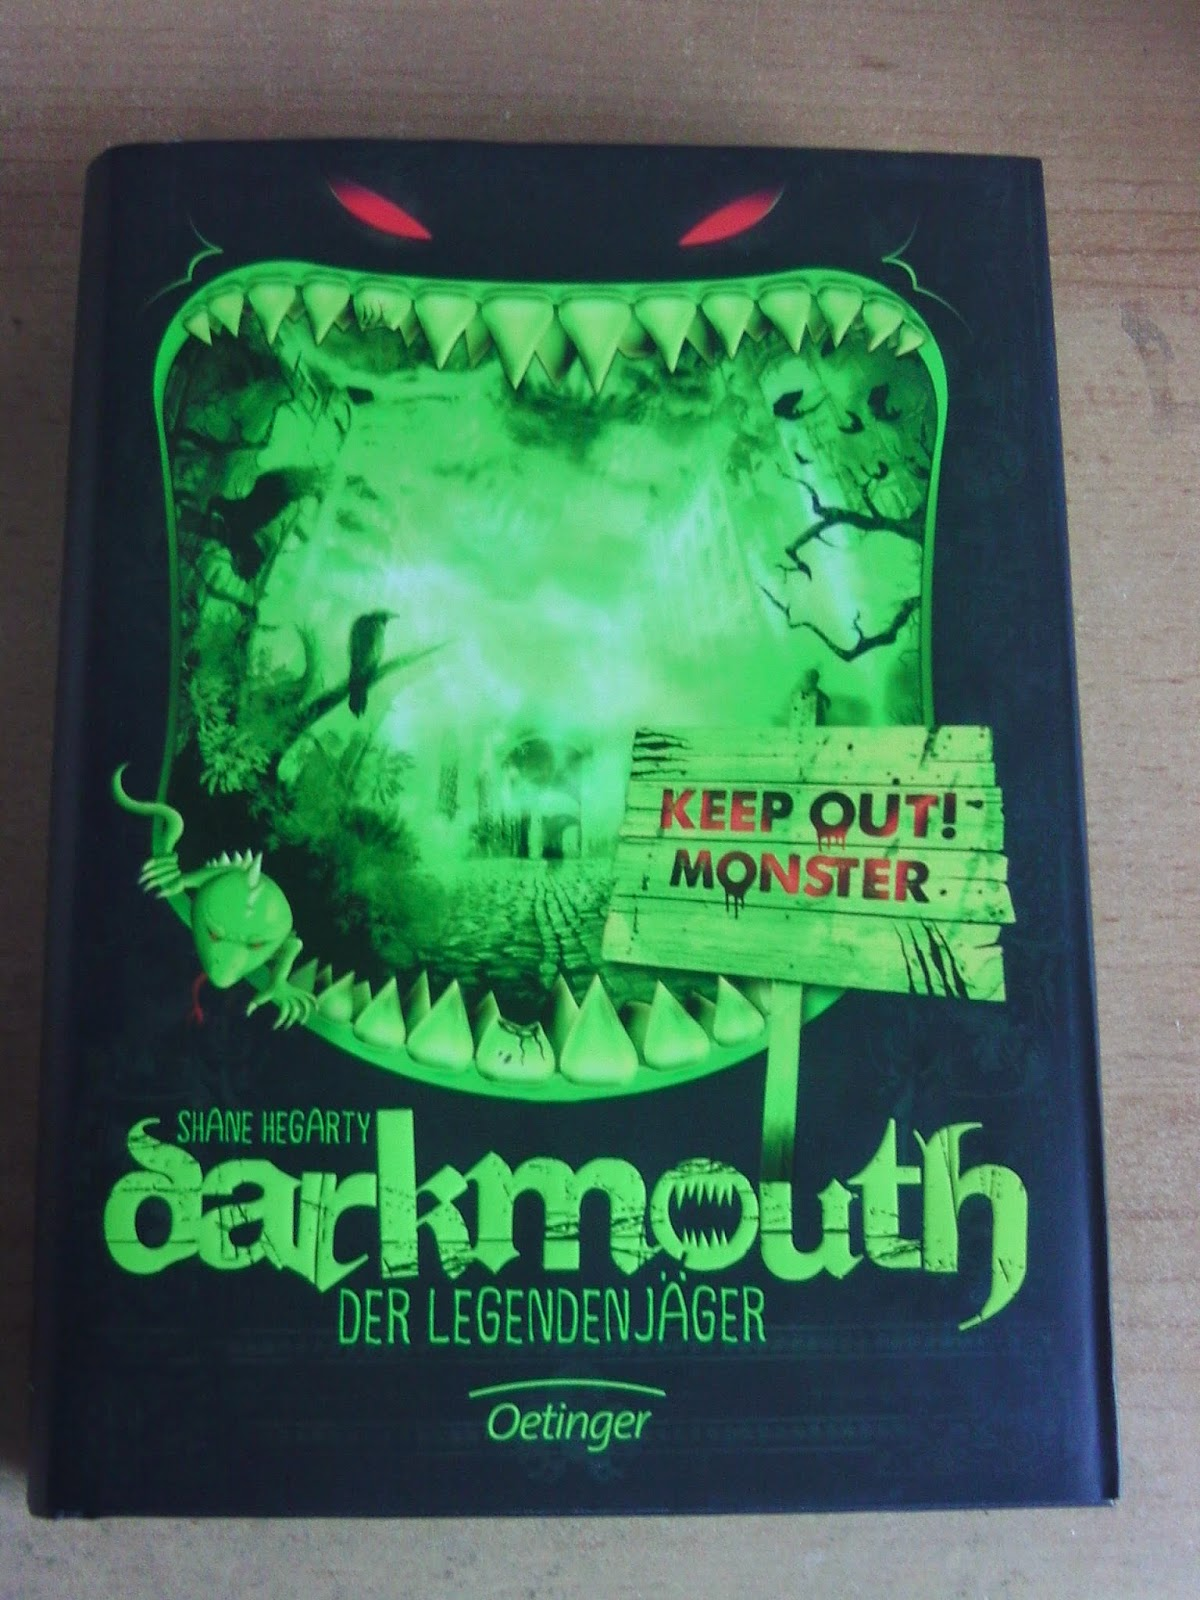 http://www.amazon.de/Darkmouth-Legendenj%C3%A4ger-Band-Shane-Hegarty/dp/3789137251/ref=sr_1_1?s=books&ie=UTF8&qid=1428998139&sr=1-1&keywords=darkmouth+-+der+legendenj%C3%A4ger+1